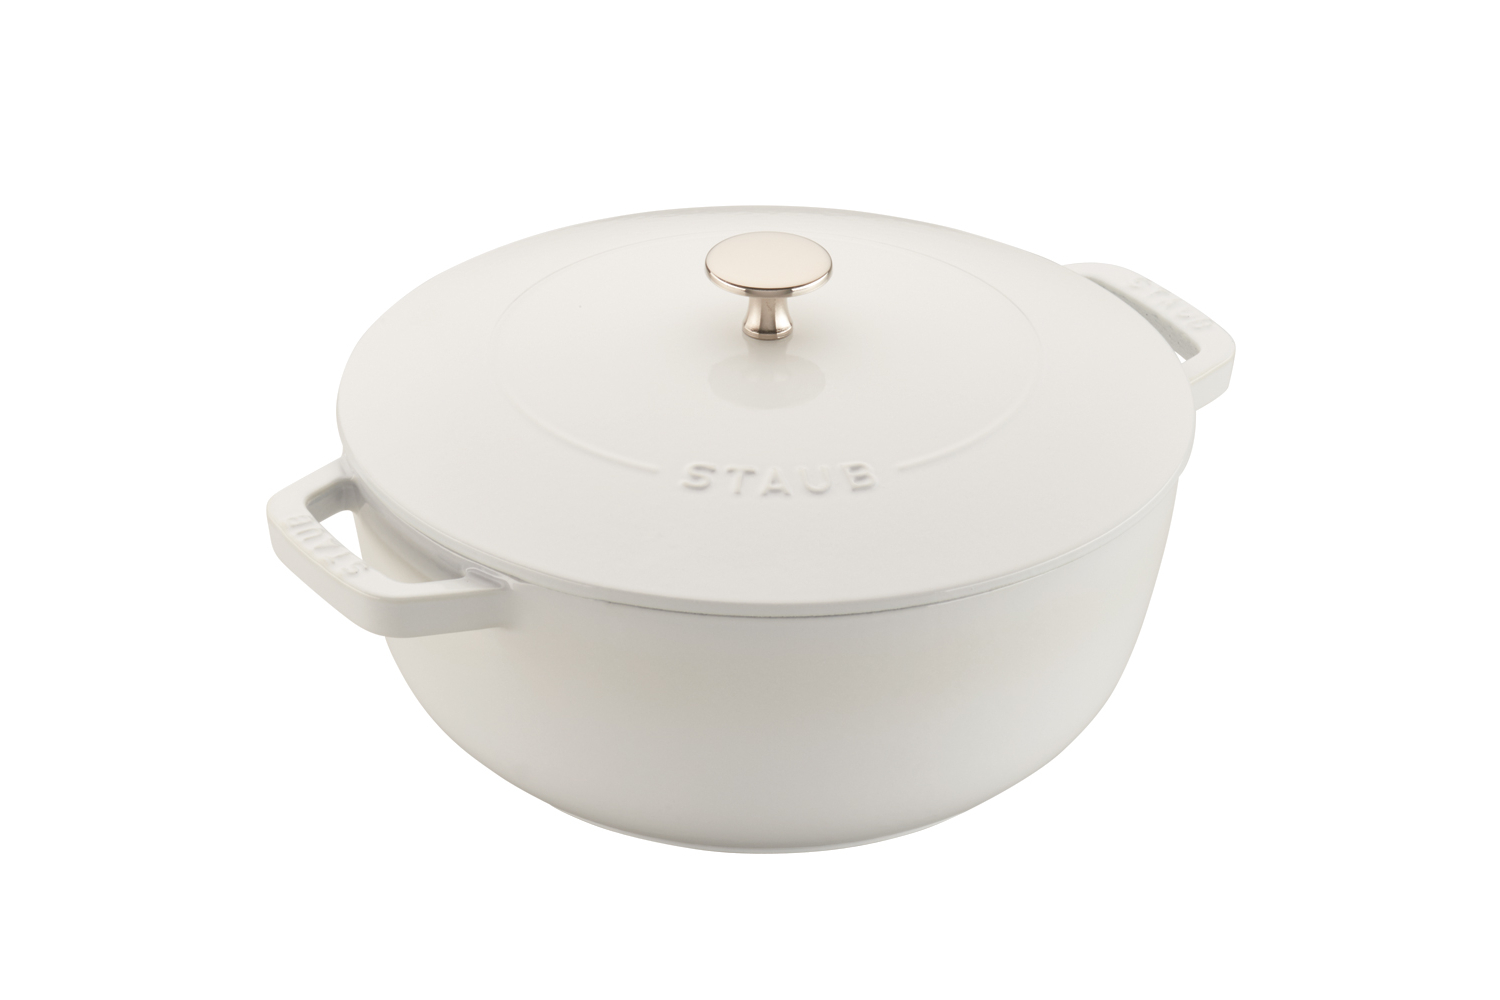 Staub Cast Iron 3 3/4 qt. Essential French Oven - White